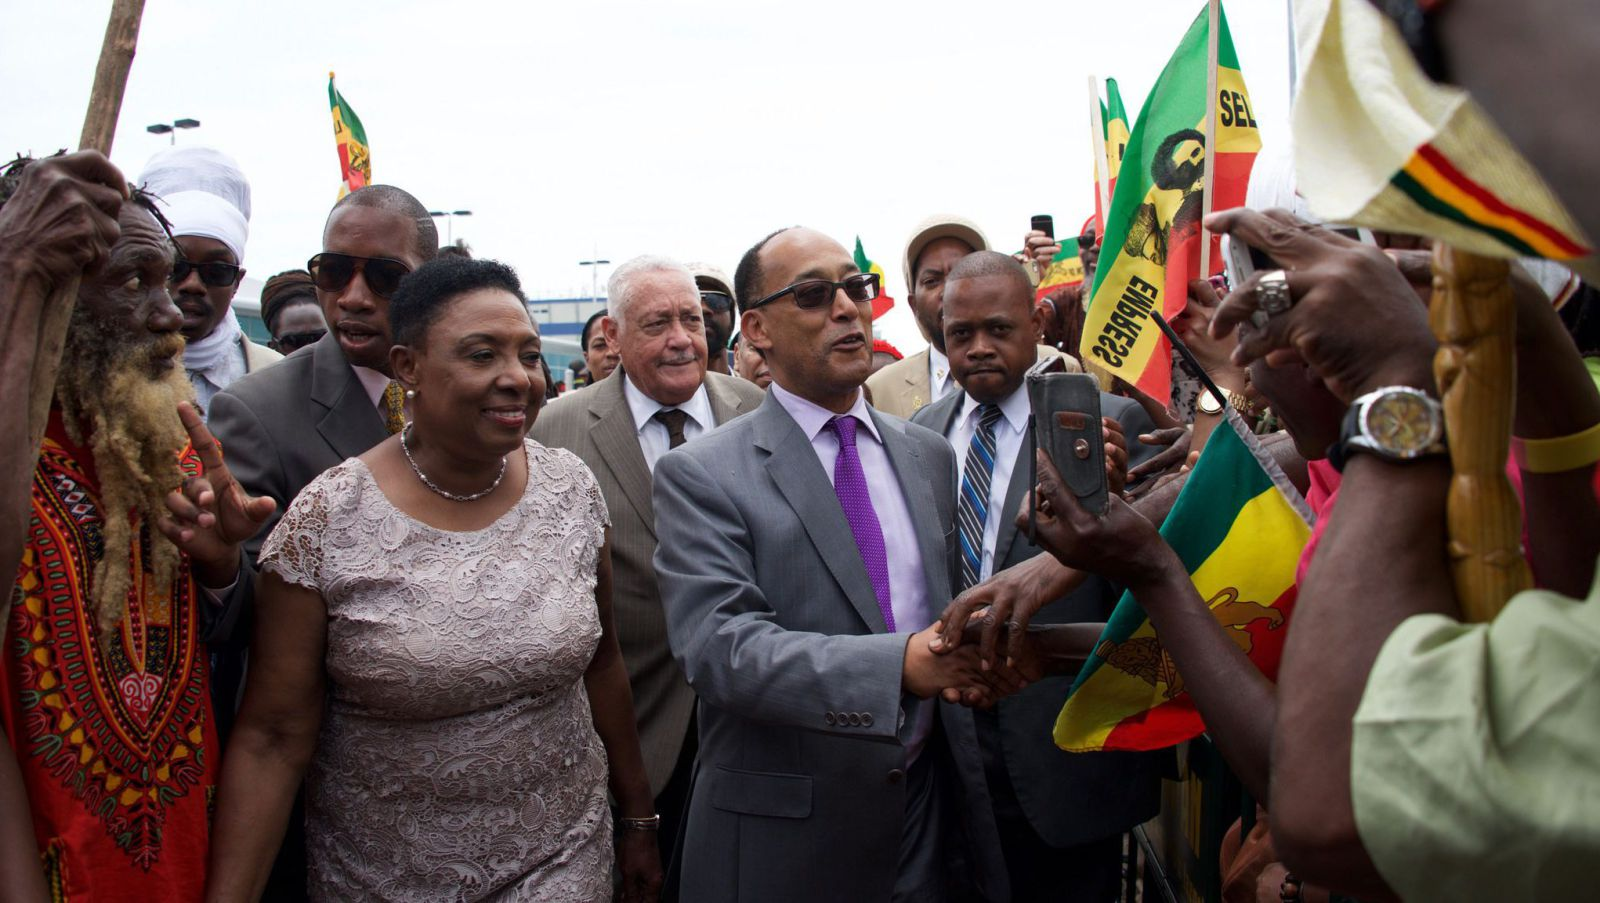 An Ethiopian prince's visit to Jamaica relives the birth of Rastafarianism